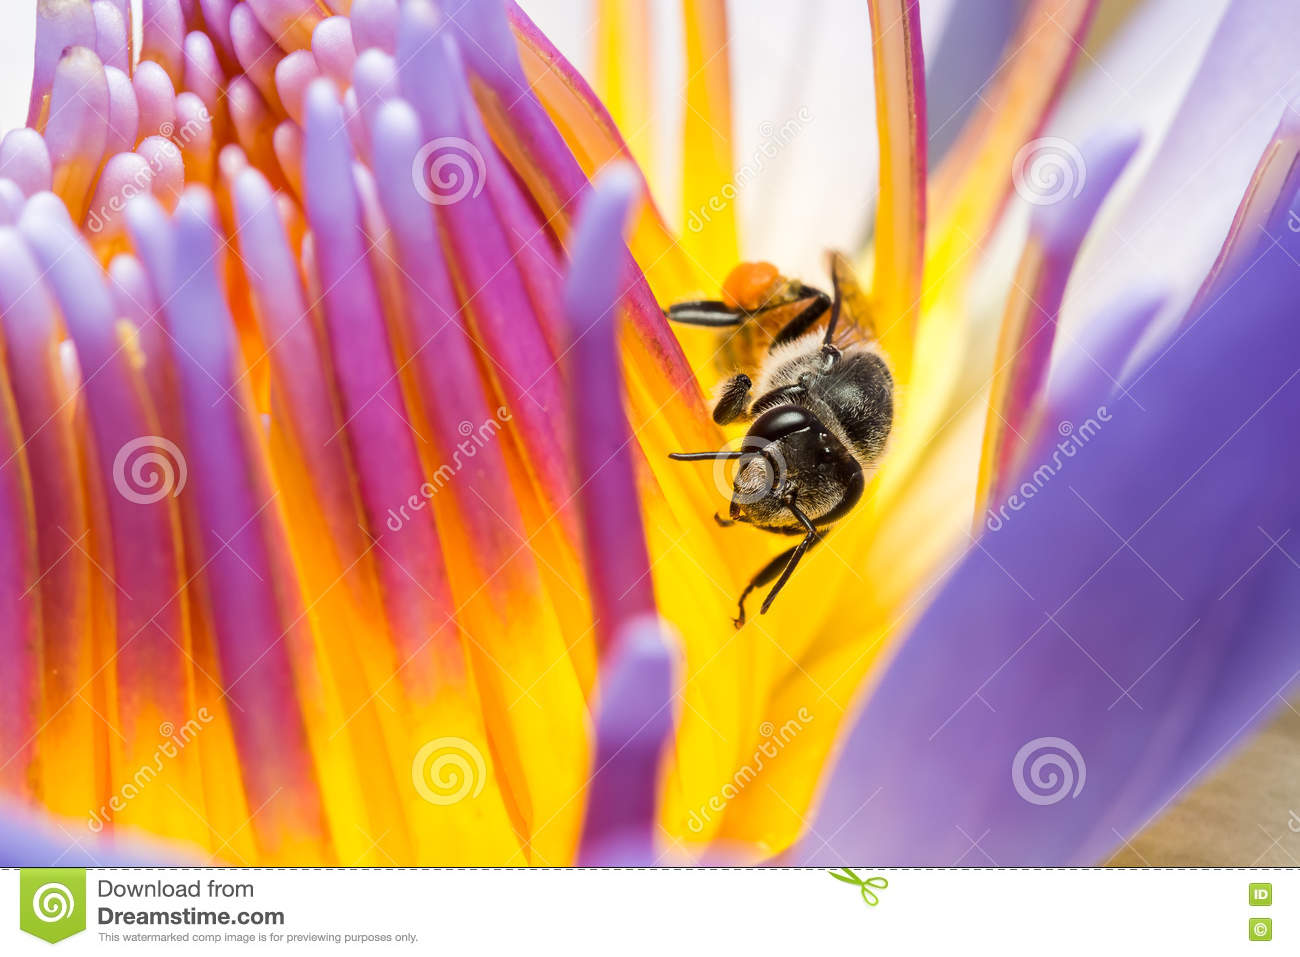 Bee eating syrup in the lotus flower stock image image of insect download bee eating syrup in the lotus flower stock image image of insect carpel mightylinksfo